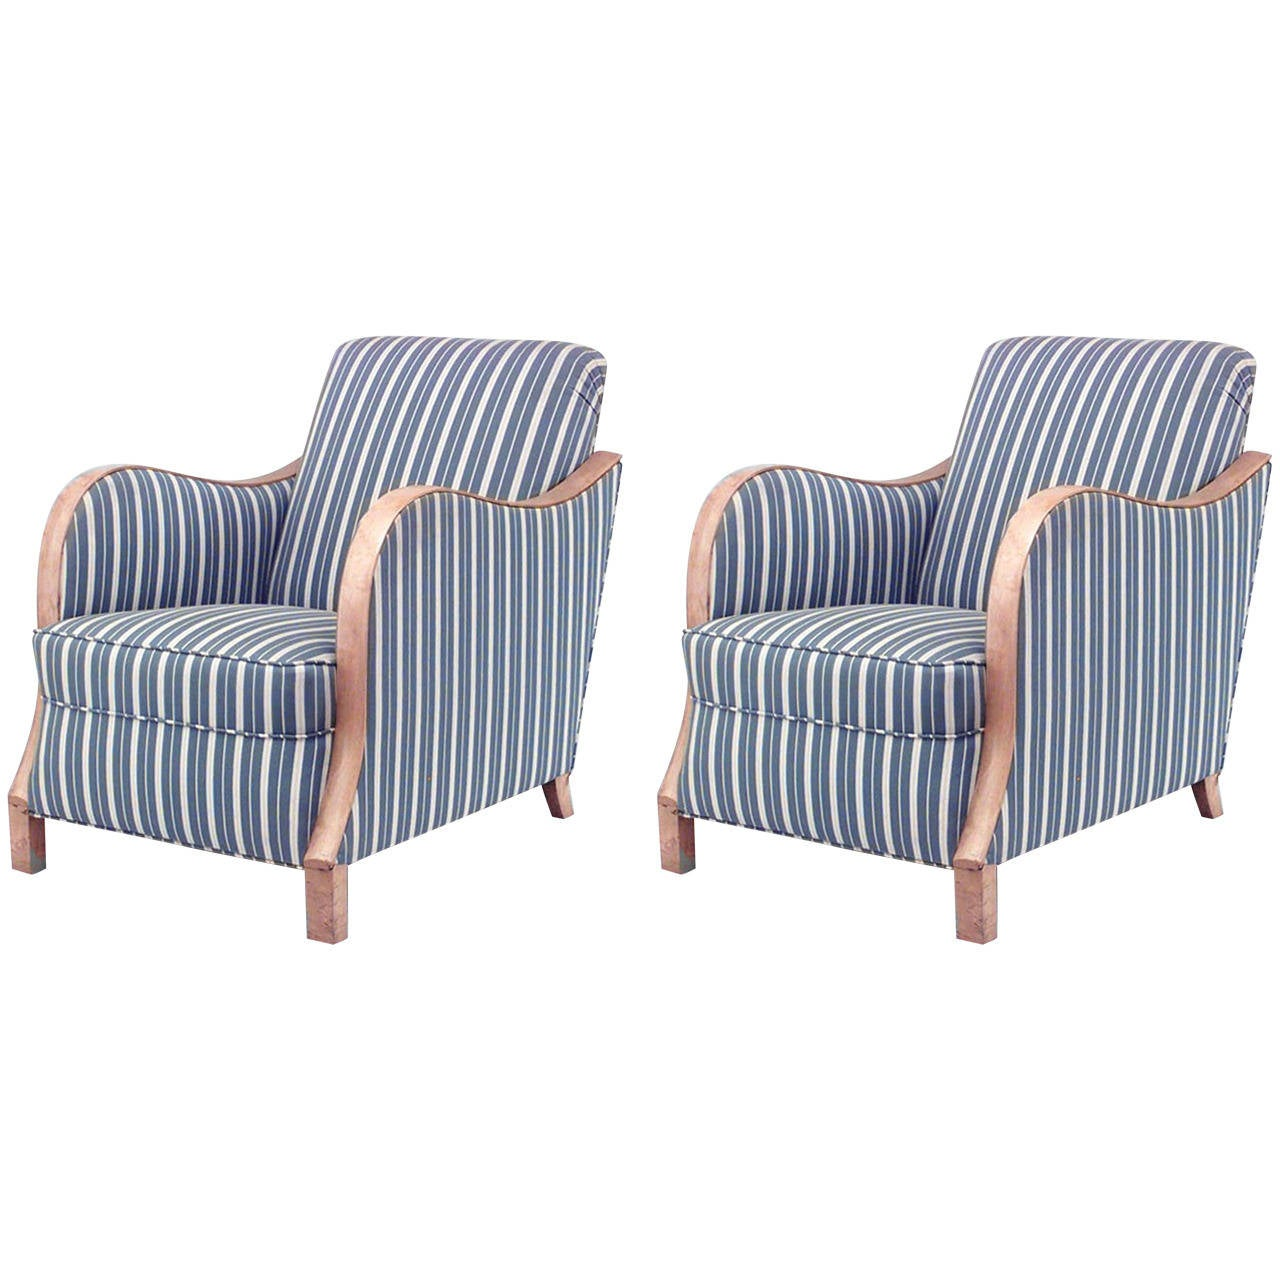 Swedish Biedermeier Style Upholstered Club Chairs